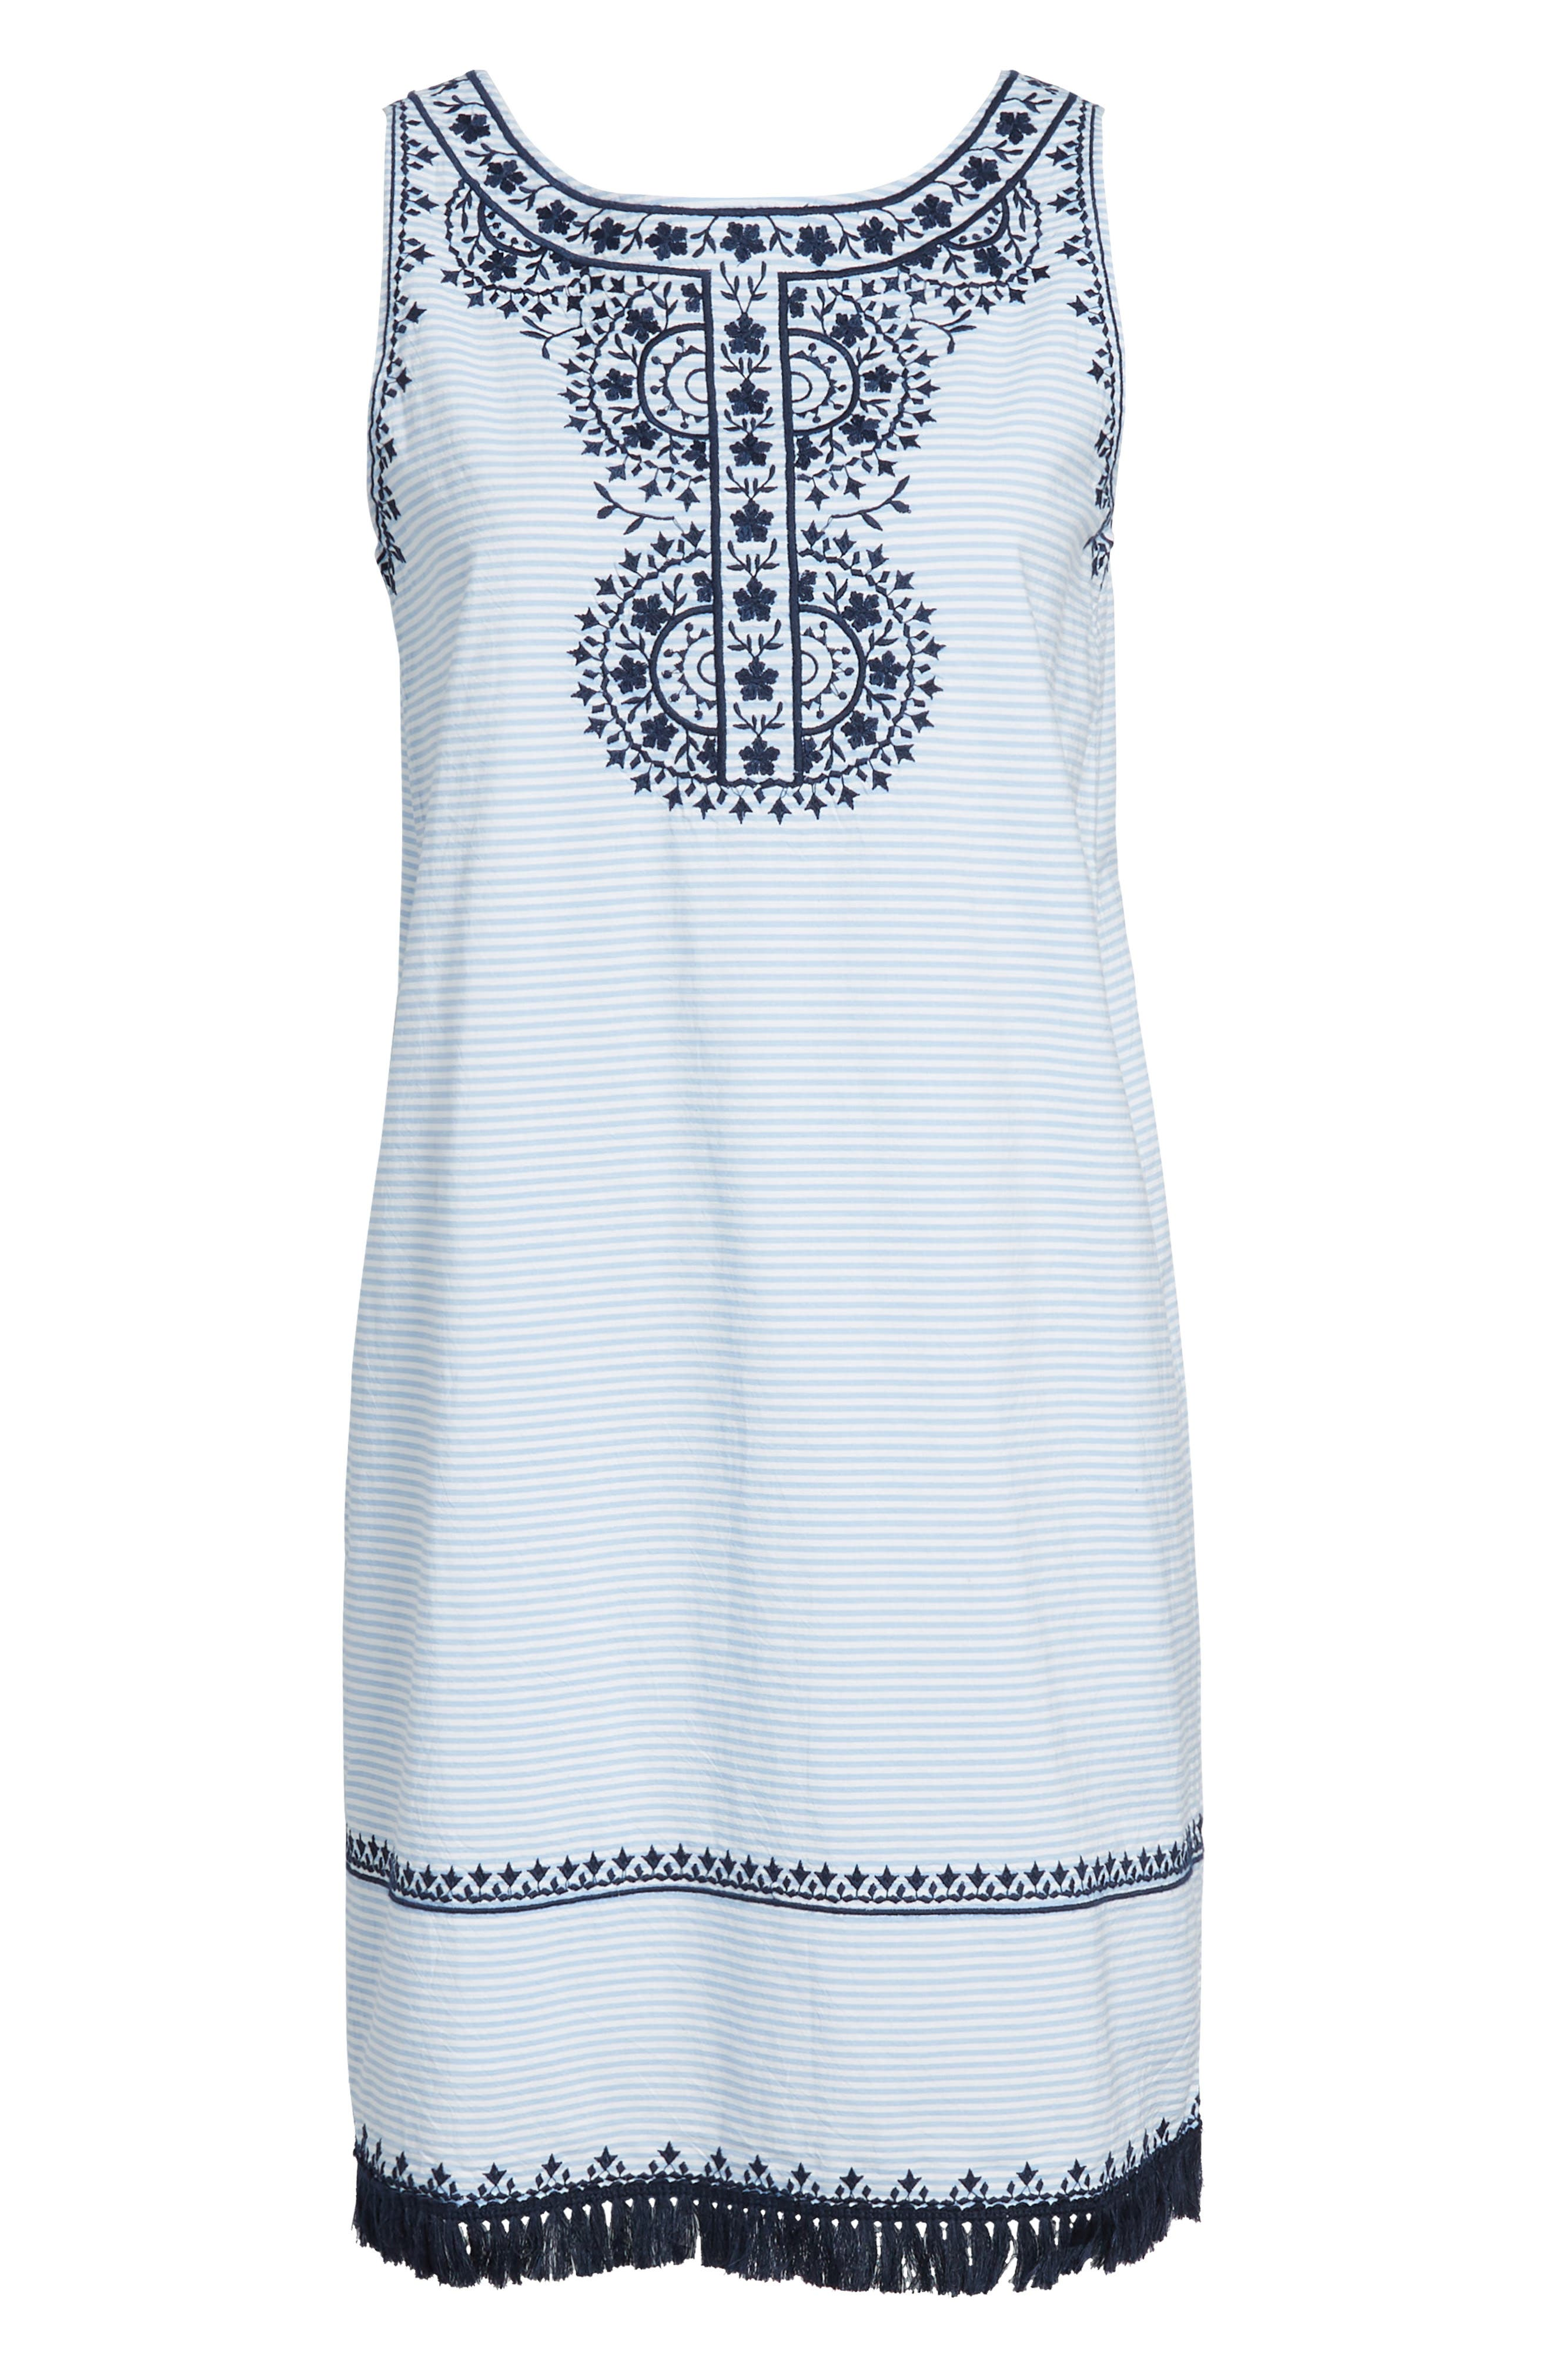 Embroidered Stripe Shift Dress,                             Alternate thumbnail 7, color,                             458